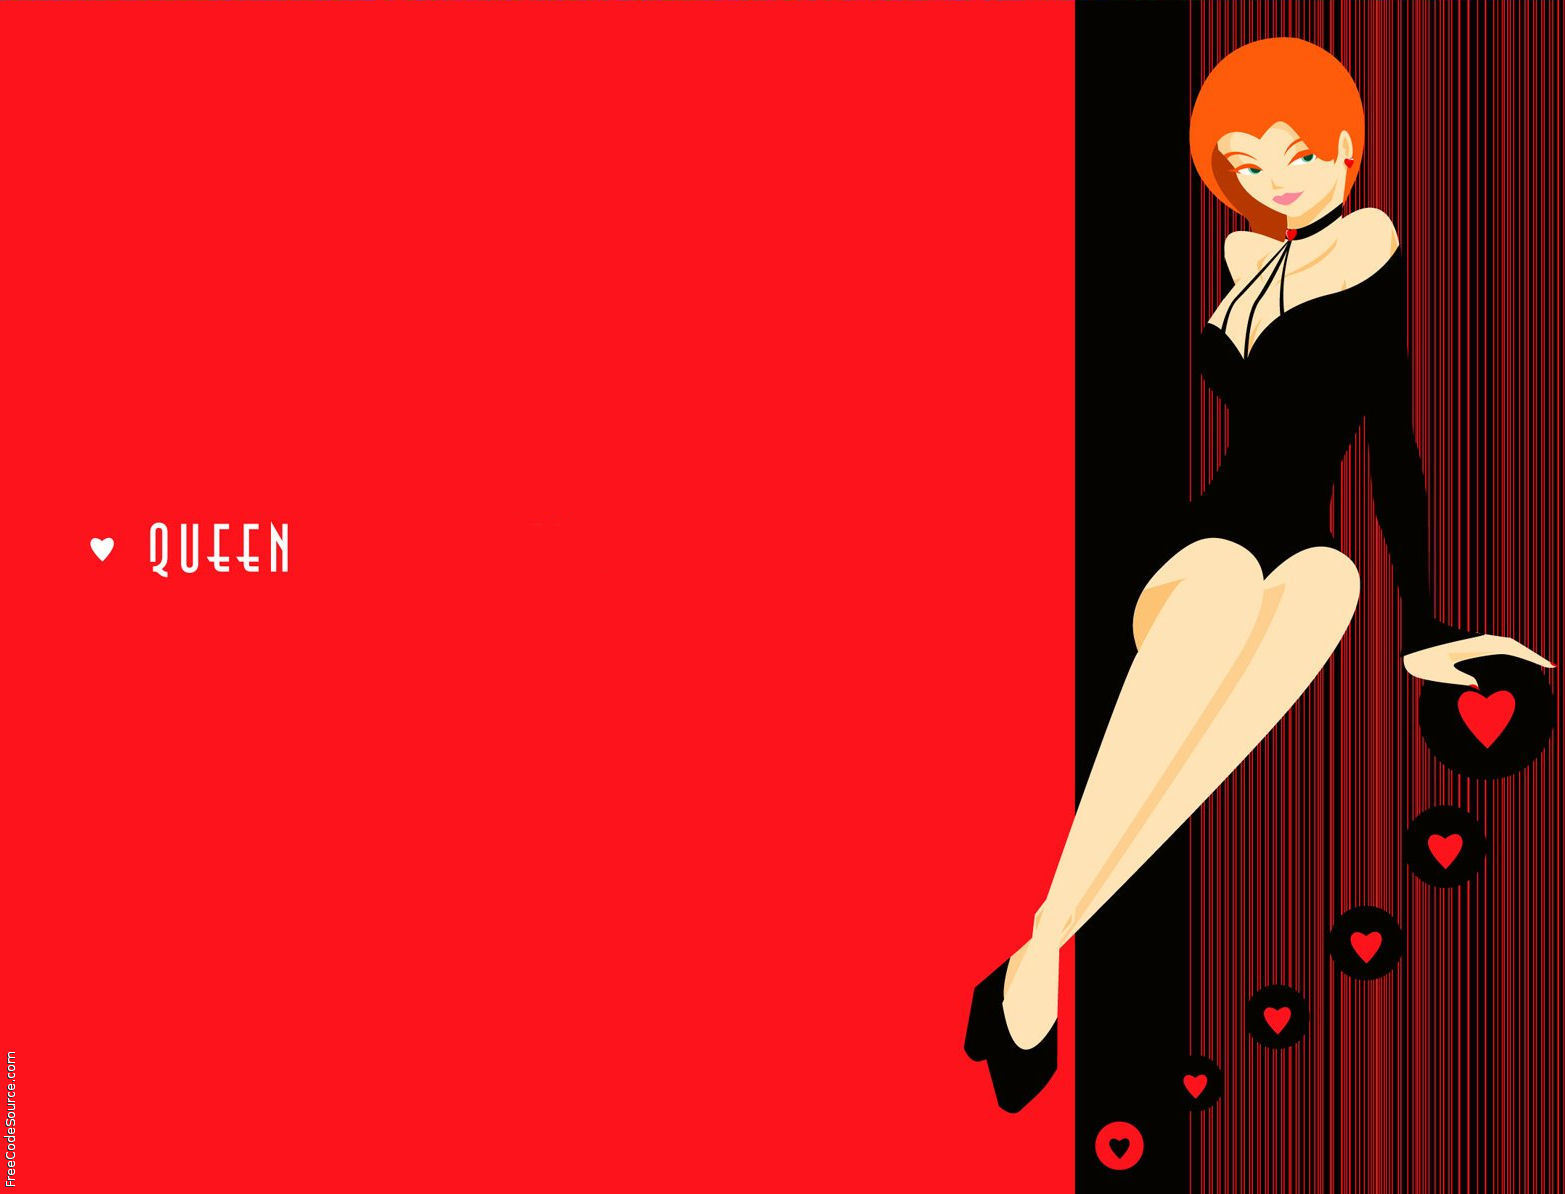 Queen Of Hearts Twitter Backgrounds, Queen Of Hearts Twitter Layouts ...